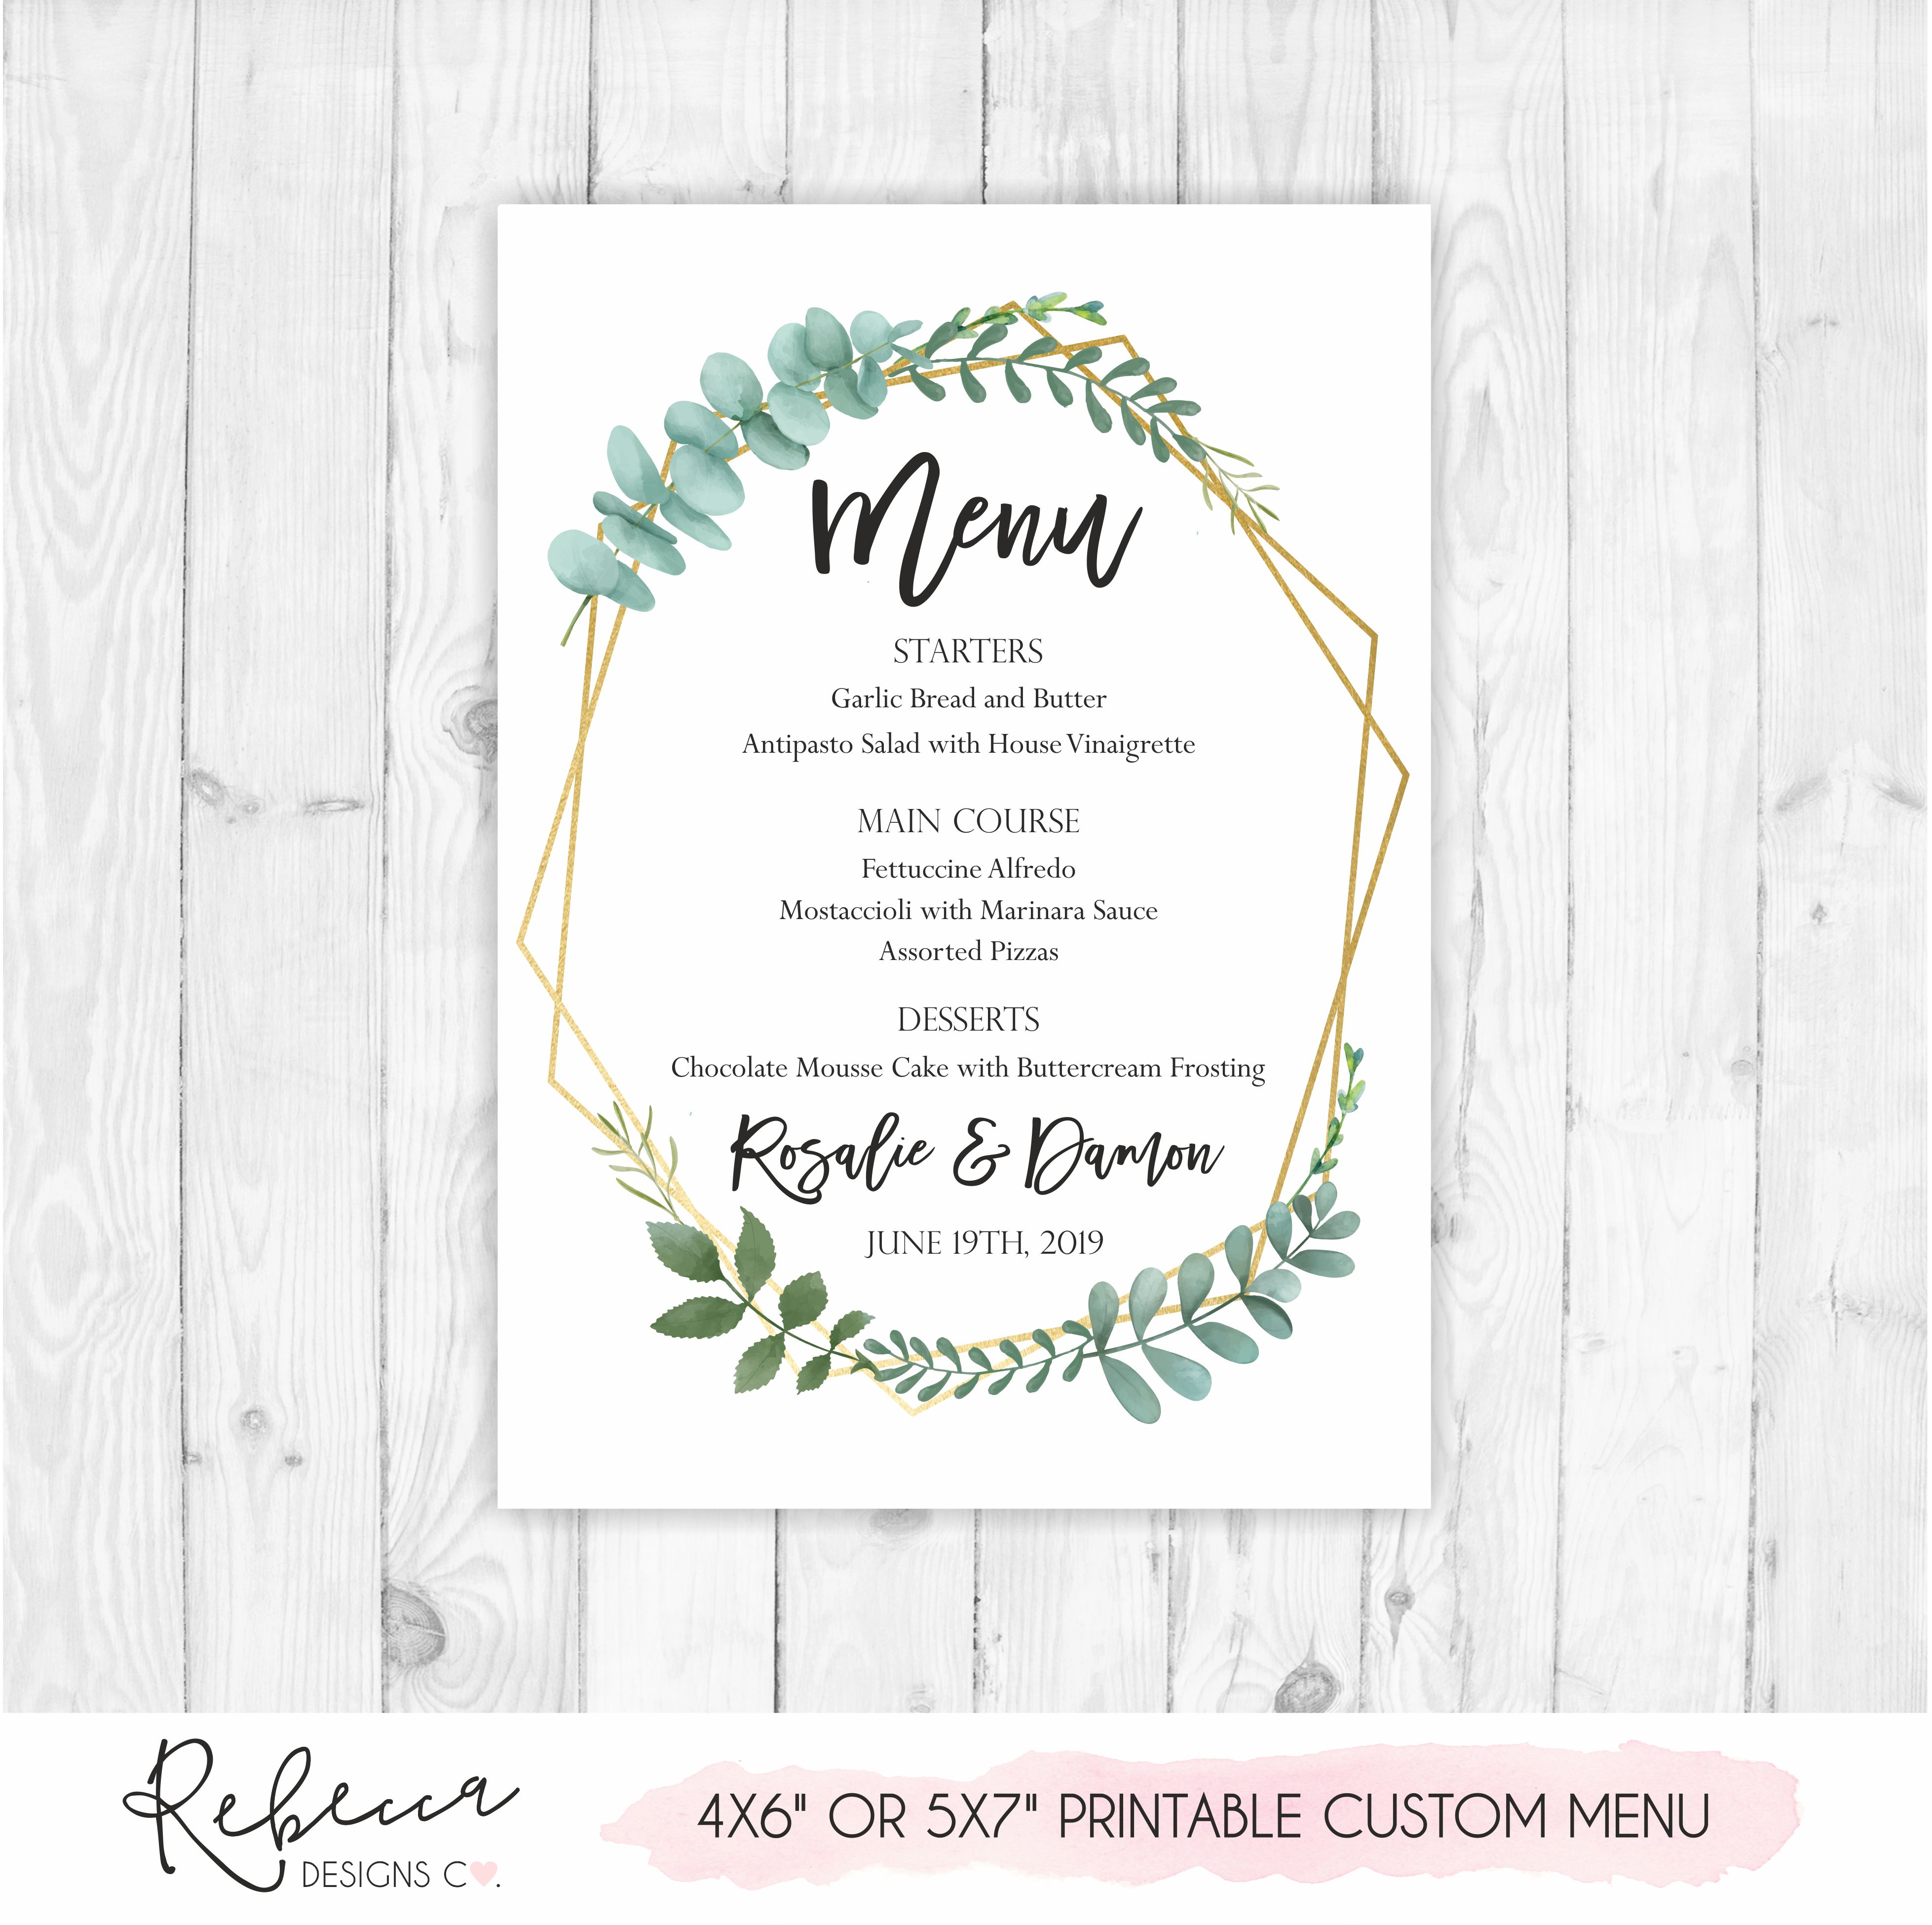 photo regarding Menu Printable identified as Greenery marriage menu Printable custom made design and style